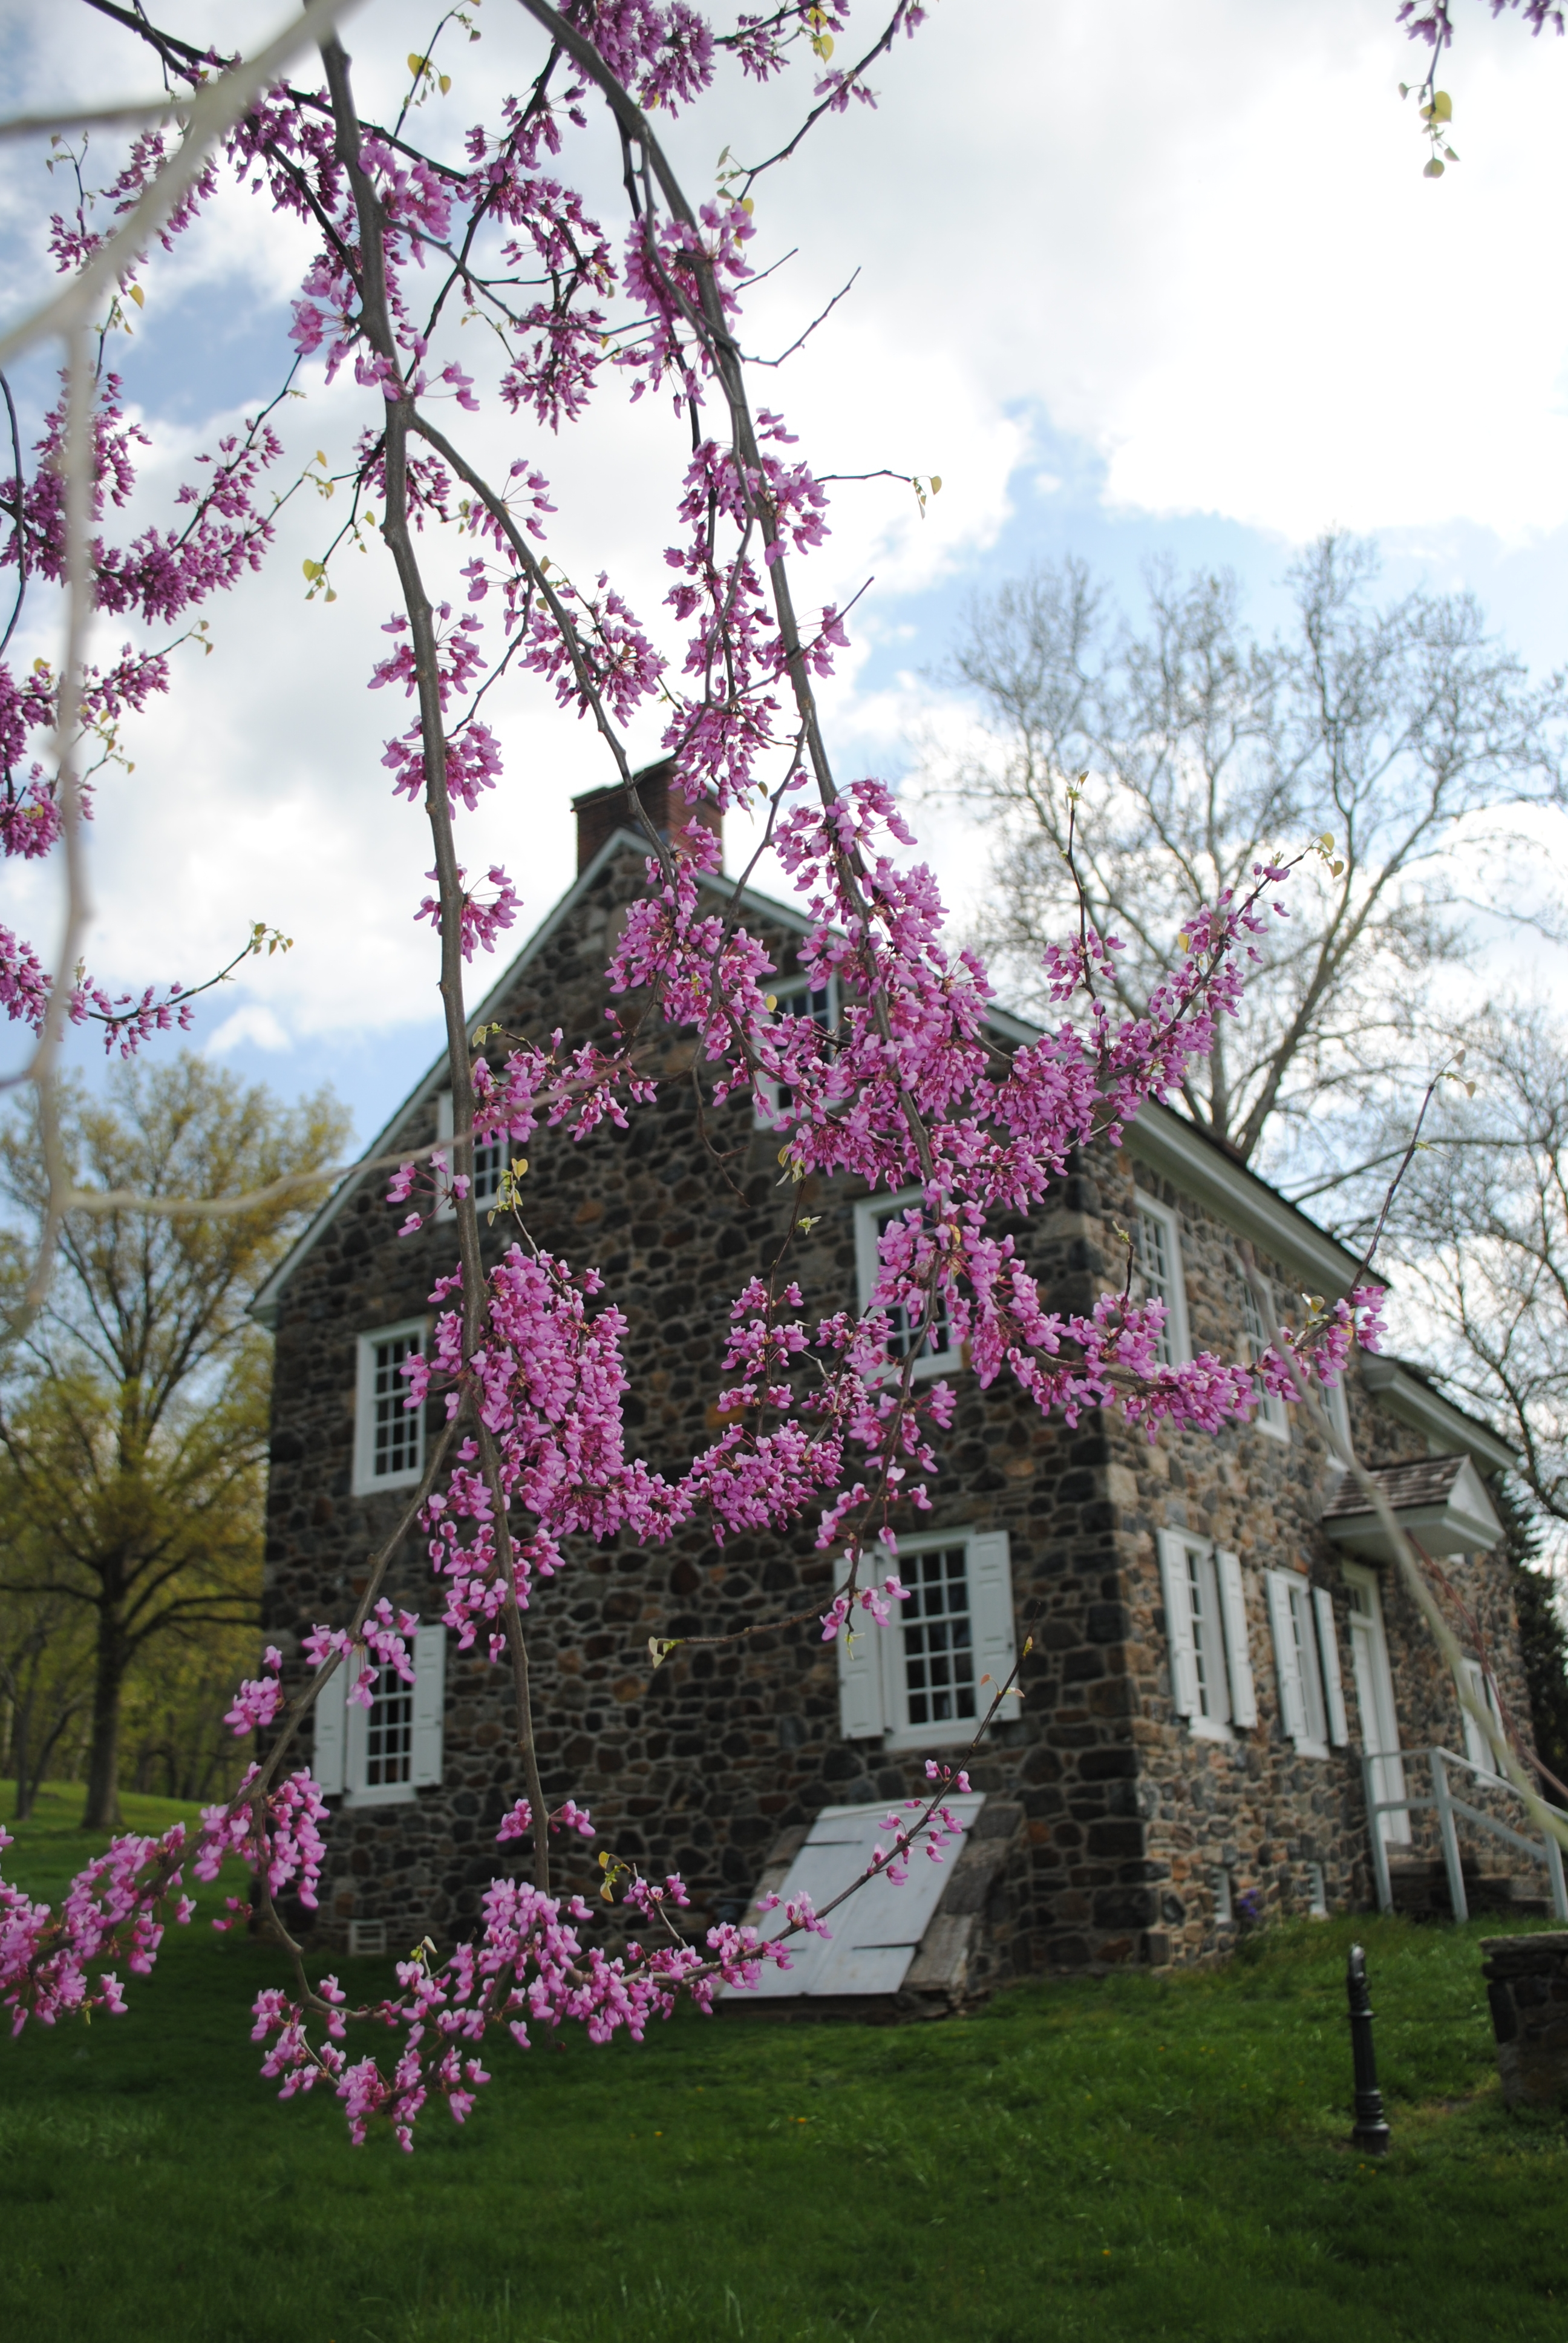 delaware county historical sites today